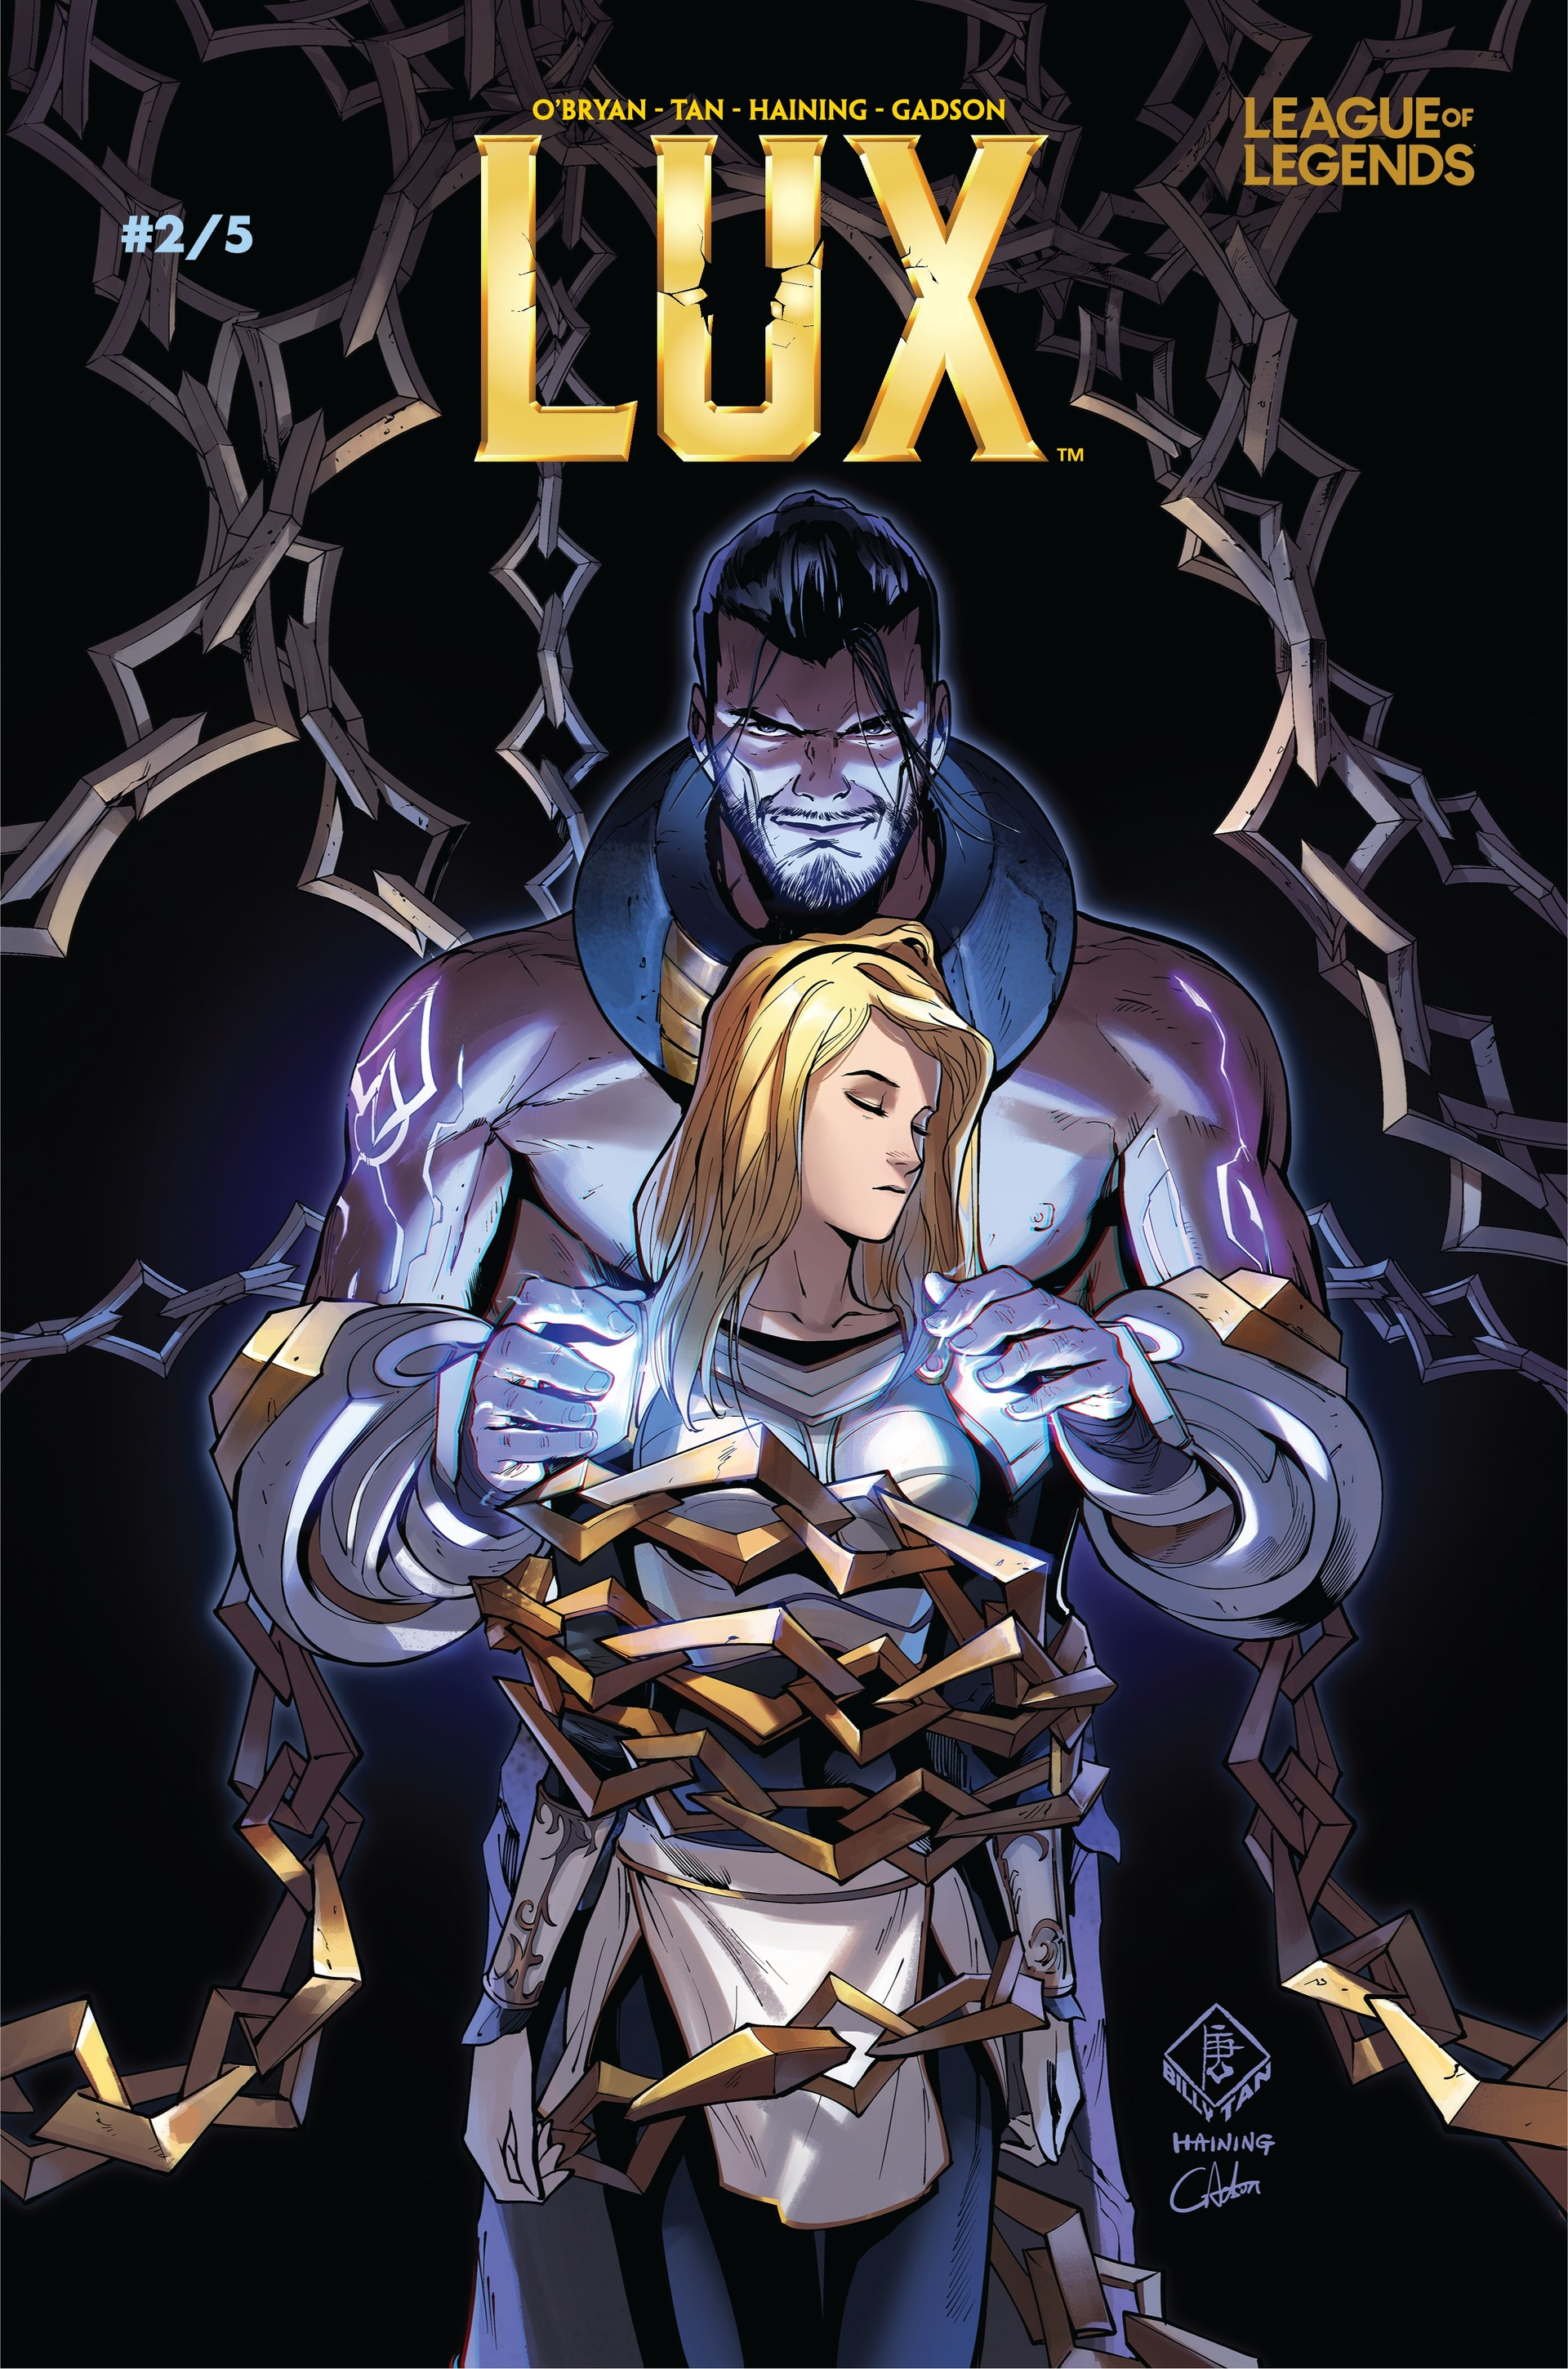 Is It Just Me Or Does Sylas Look Kind Of Like A Rapist In This Cover Im Not Saying They Have To Change Apologize For But Should At